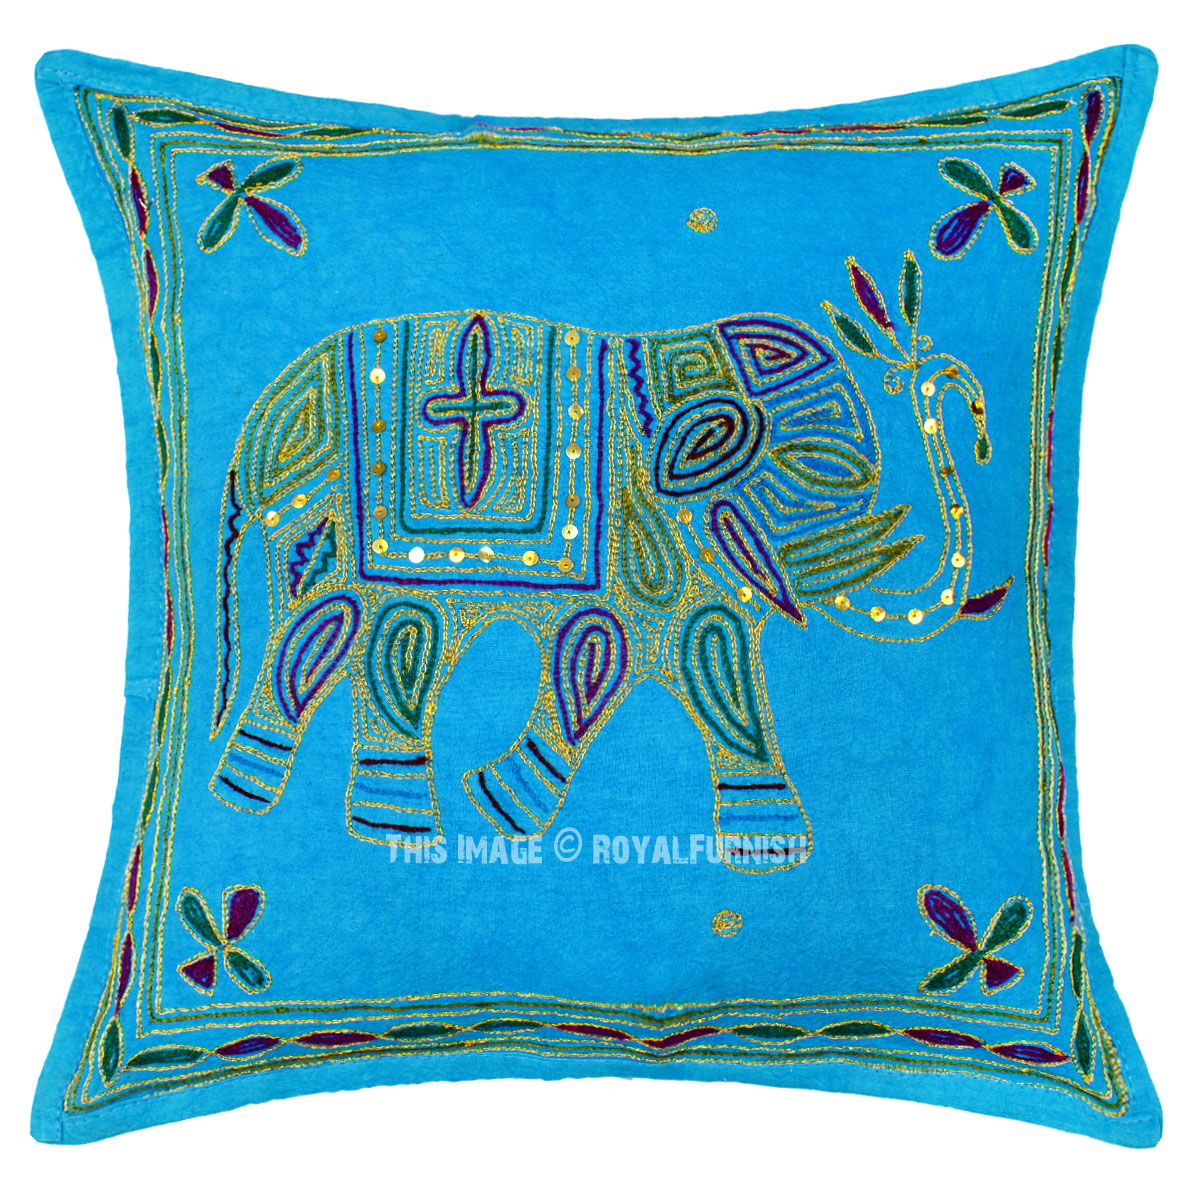 Embroidered Throw Pillow Covers : Turquoise Needlepoint 16X16 Decorative Embroidered Elephant Pillow Cover - RoyalFurnish.com